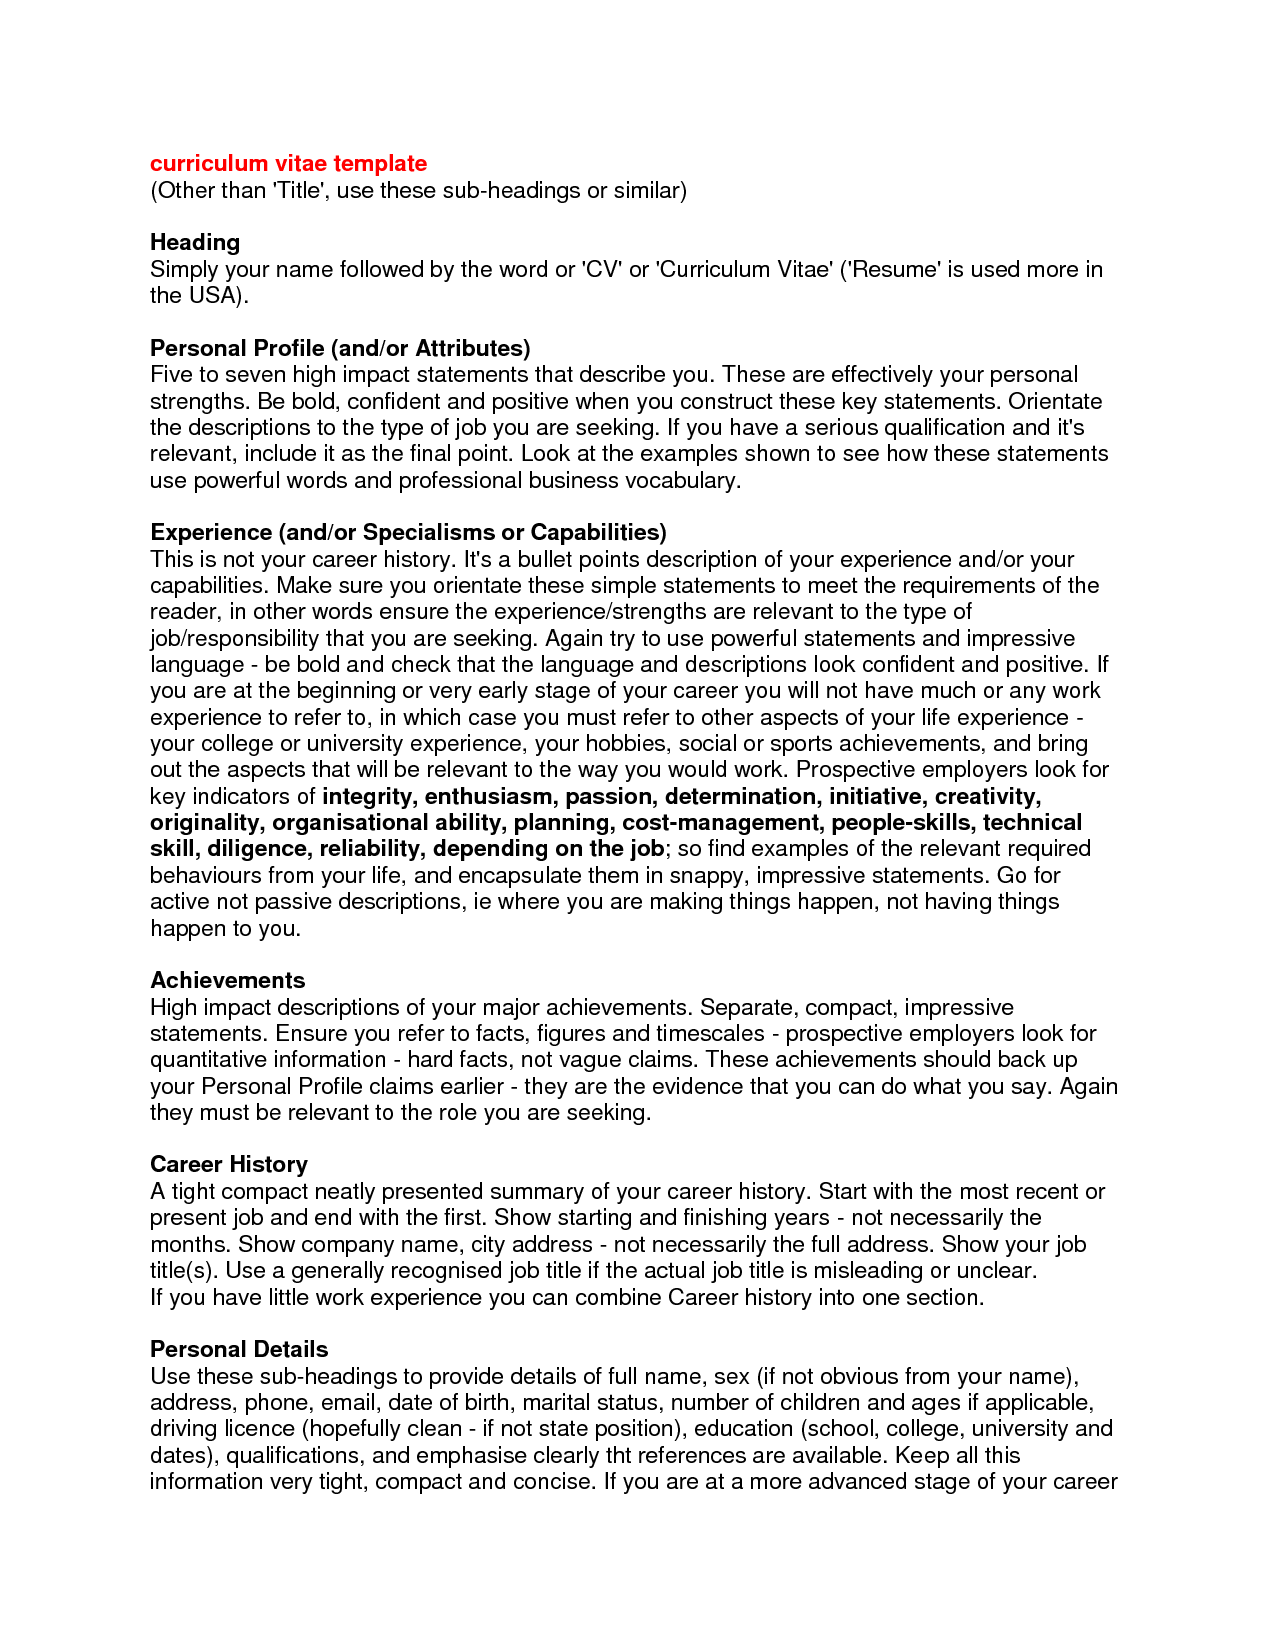 resume Personal Statement For Resume curriculum vitae personal statement samples httpwww resumecareer info